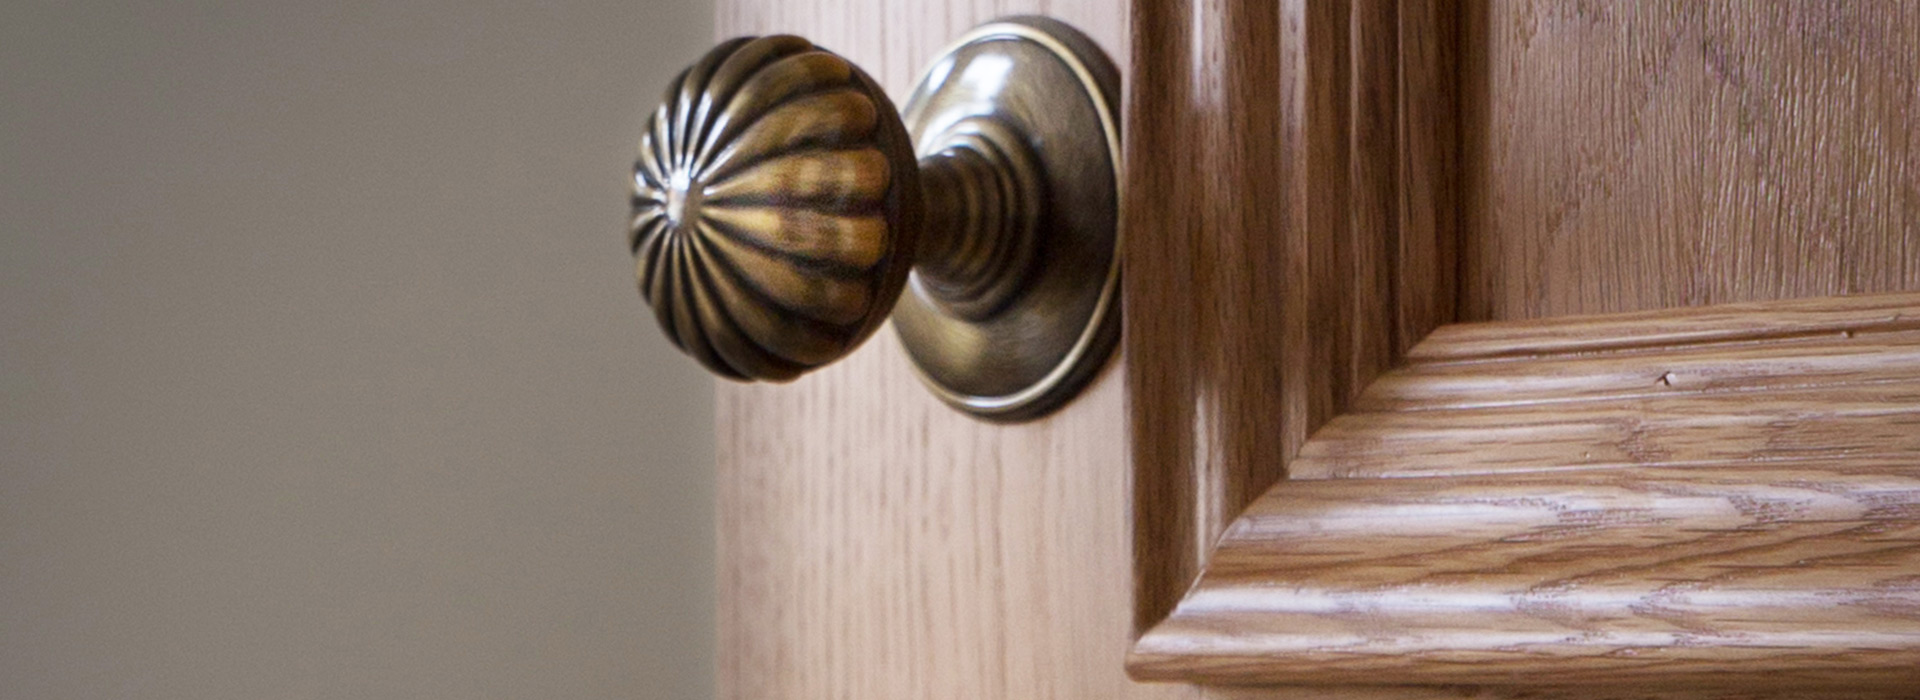 Florentine bronze door knob on traditional door